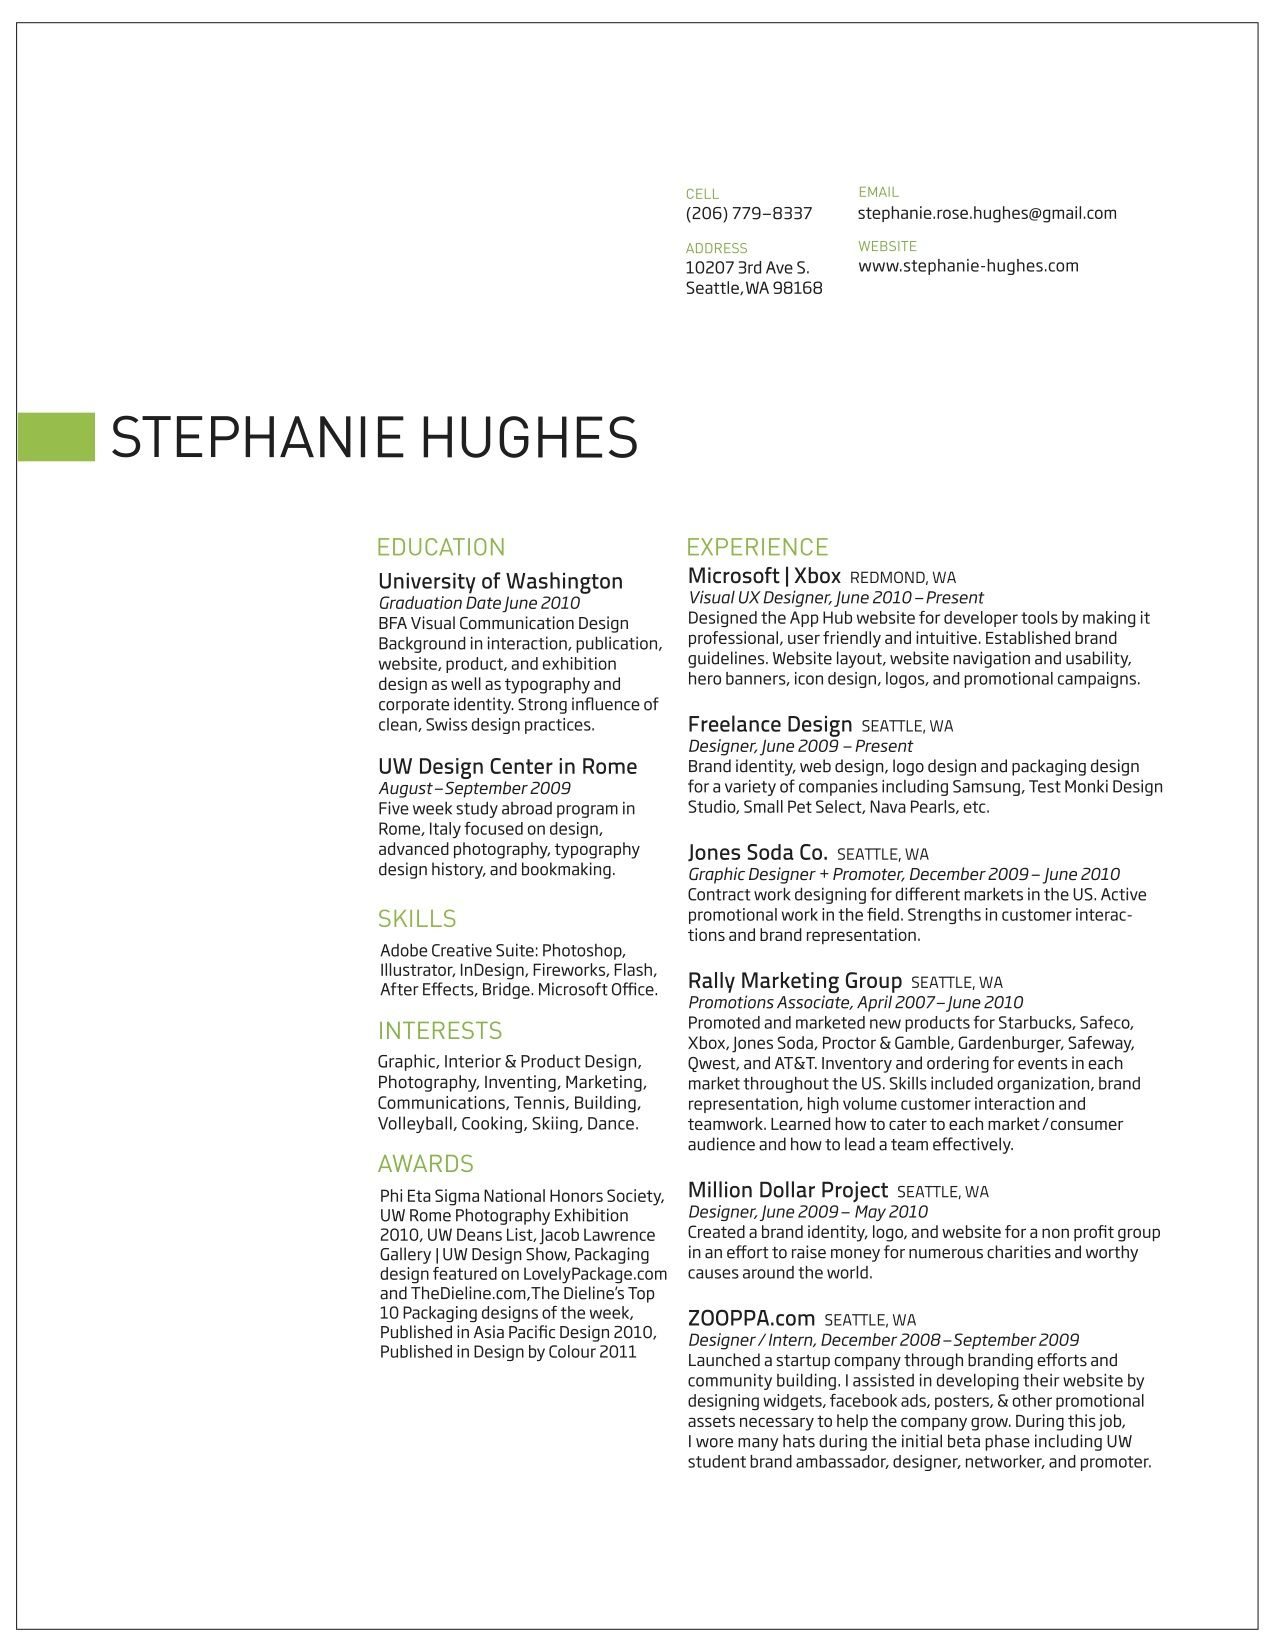 36 beautiful resume ideas that work arts ed design and layout love this resume white space really works even though there is a lot of text